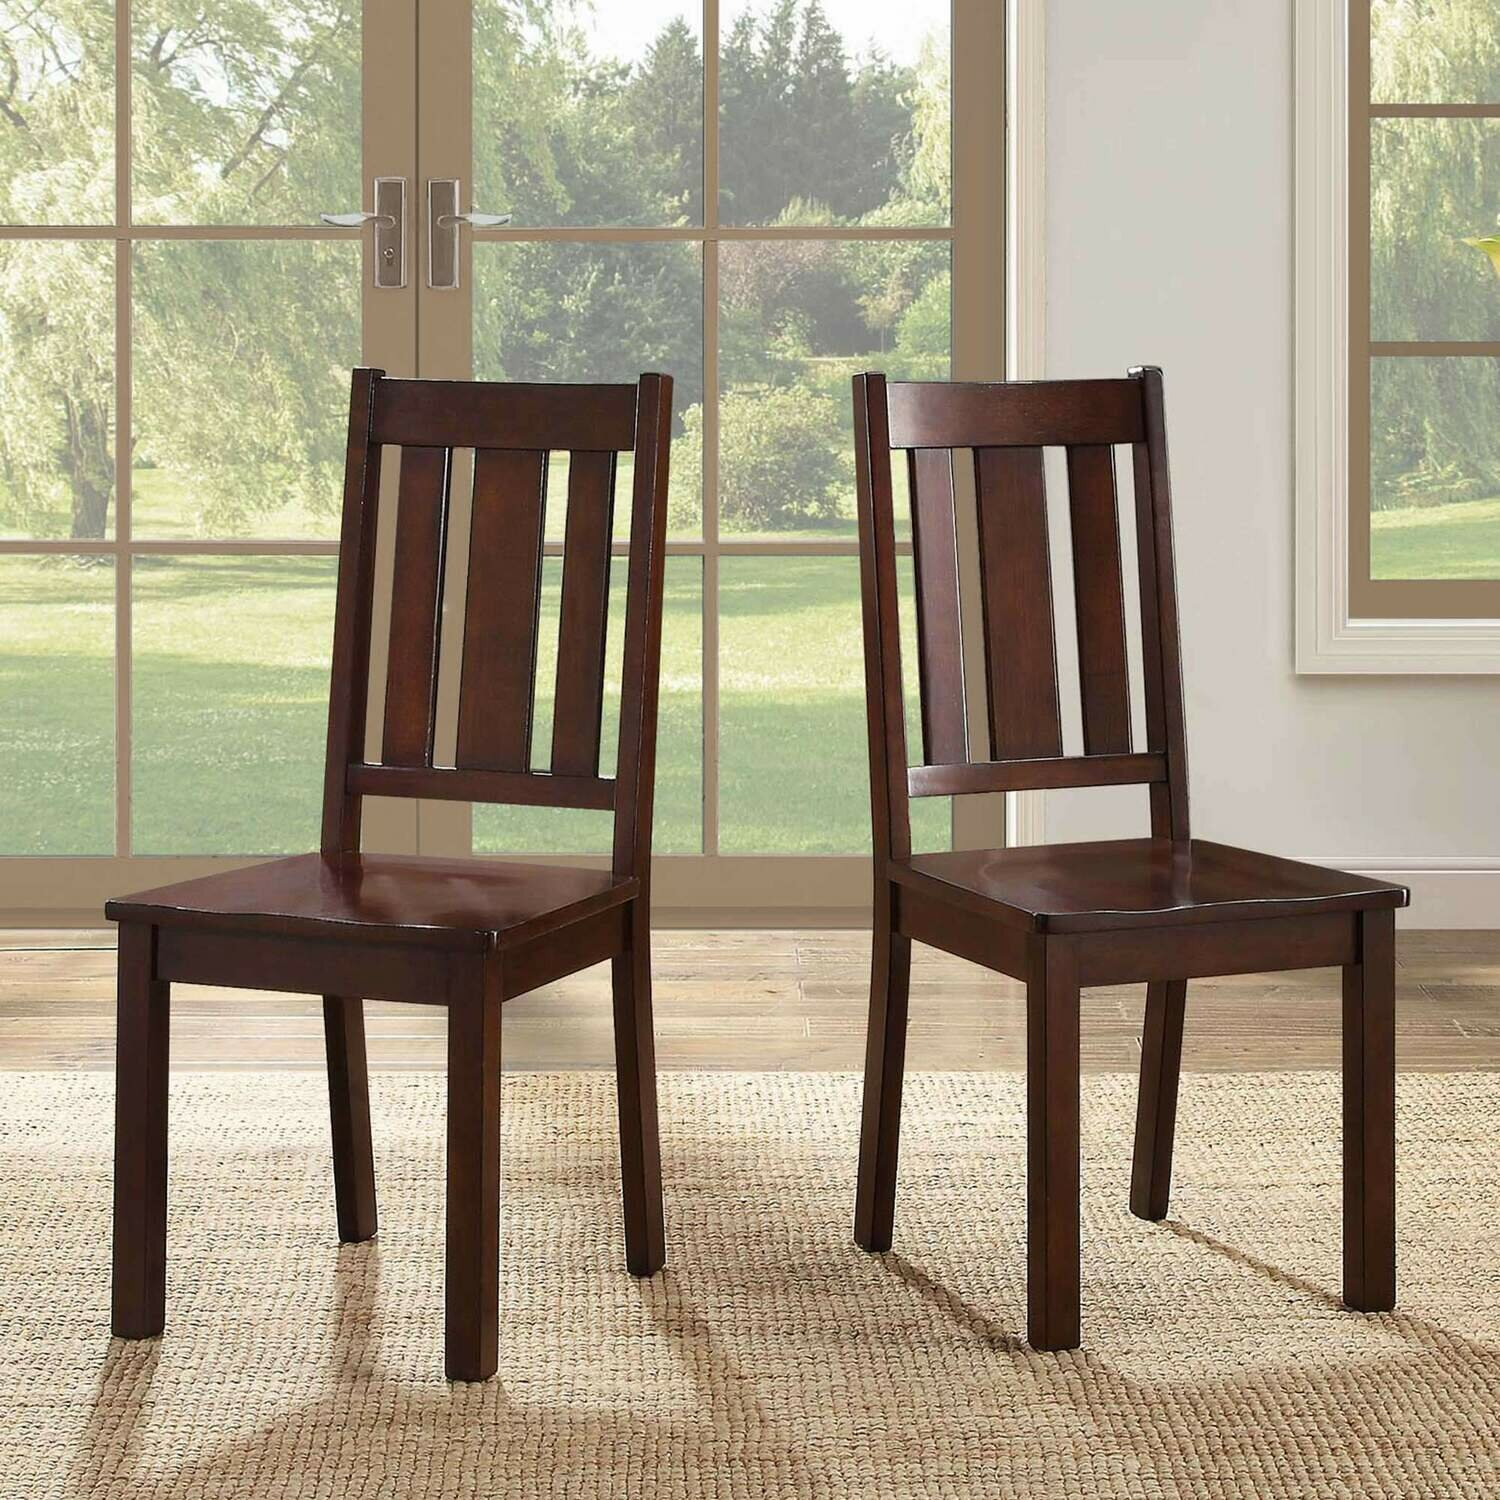 Bankston Dining Chair, Set of 2, Mocha